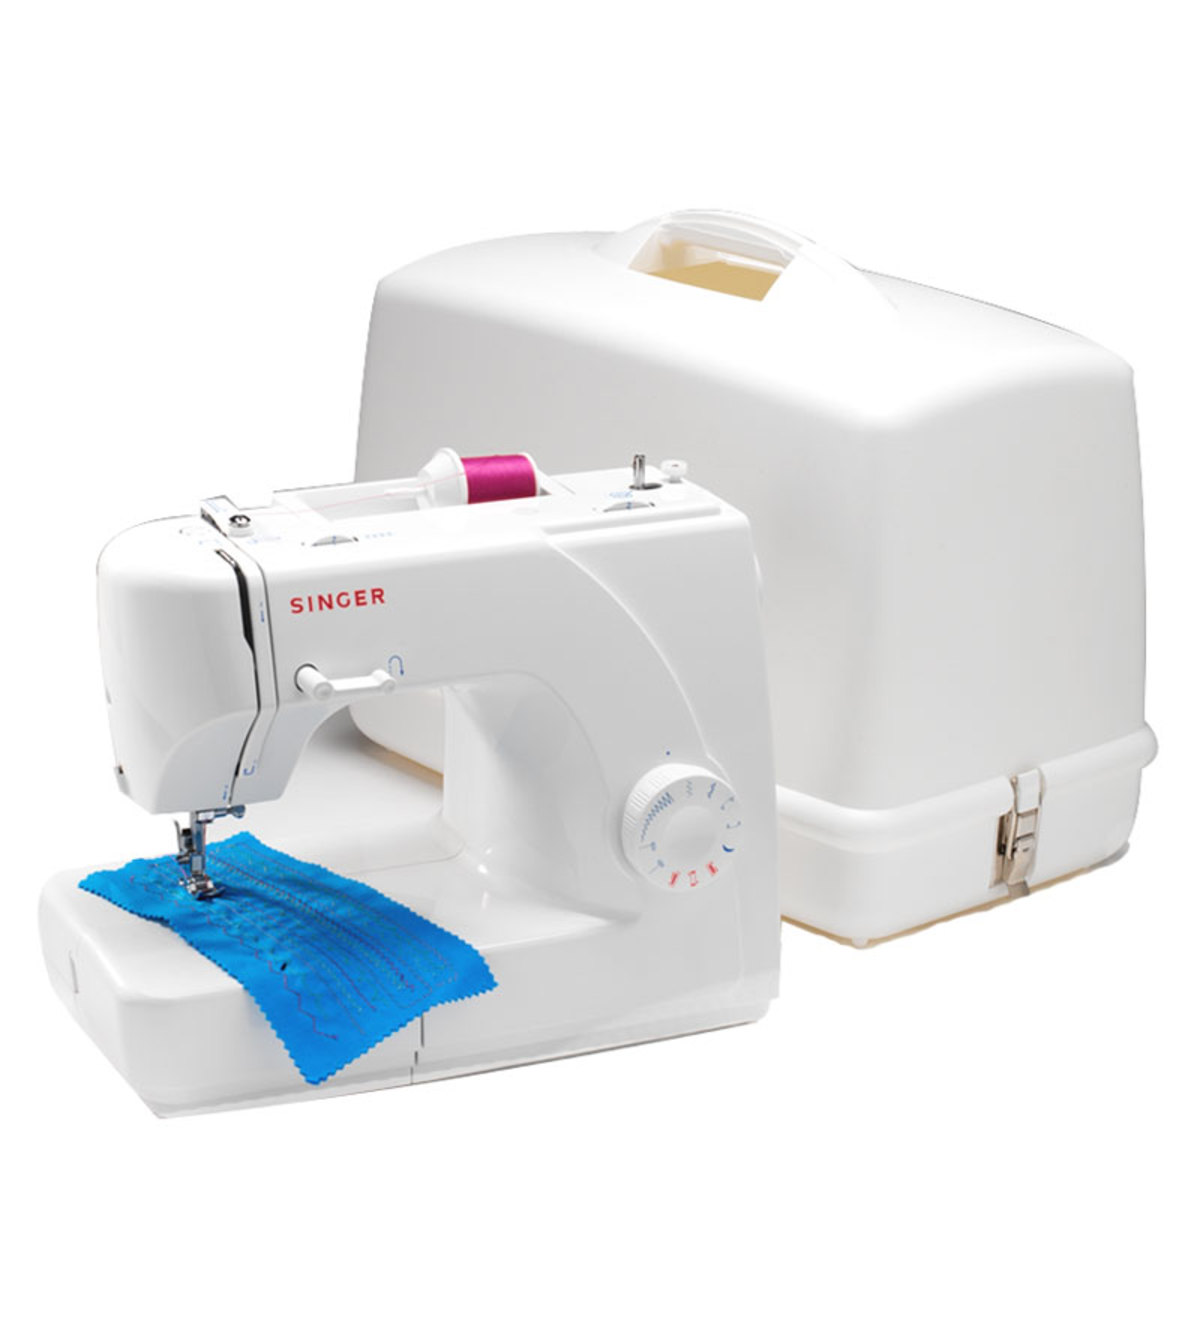 Singer Student Sewing Machine Special Collection Set